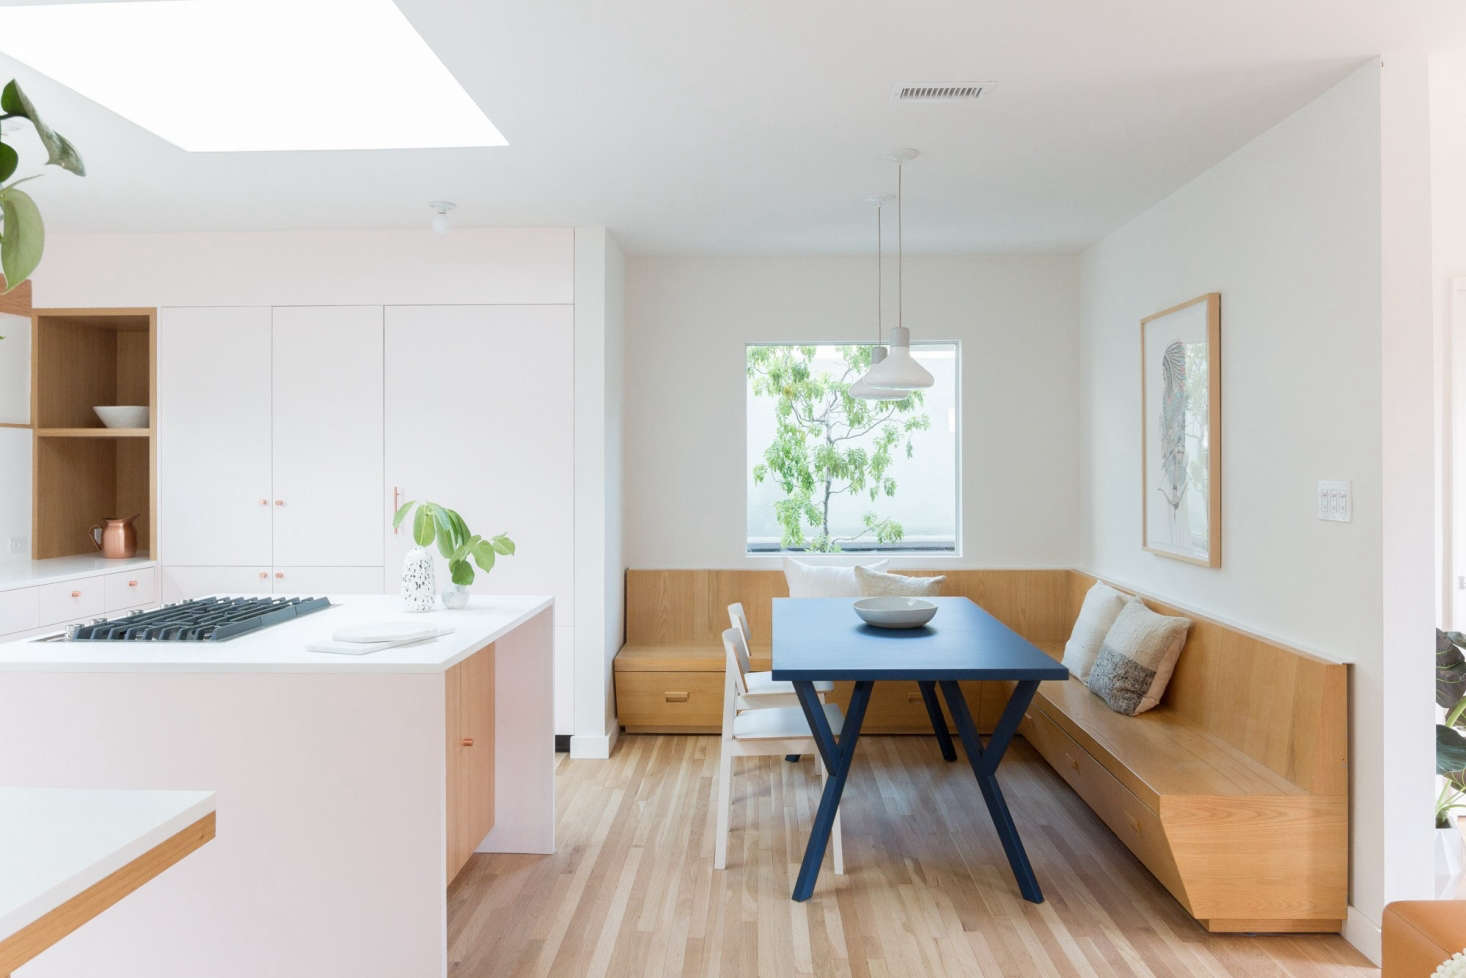 The architects introduced a minimalist, carefully crafted kitchen that Remodelista awards judge Sam Hamilton describes as &#8